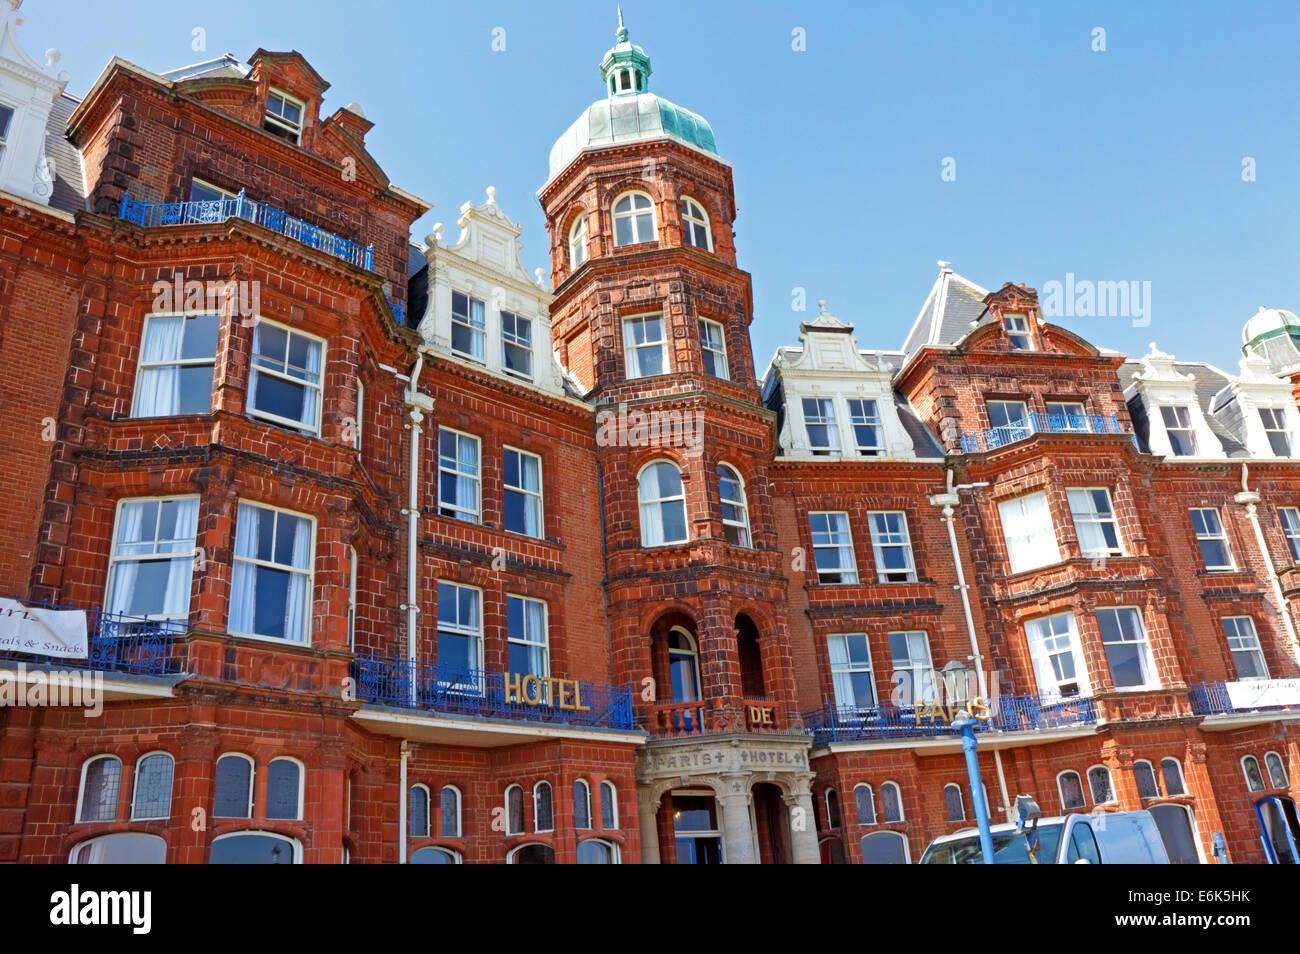 The Hotel de Paris on the seafront at the seaside resort of Cromer, Norfolk, England, United Kingdom. Stock Photo